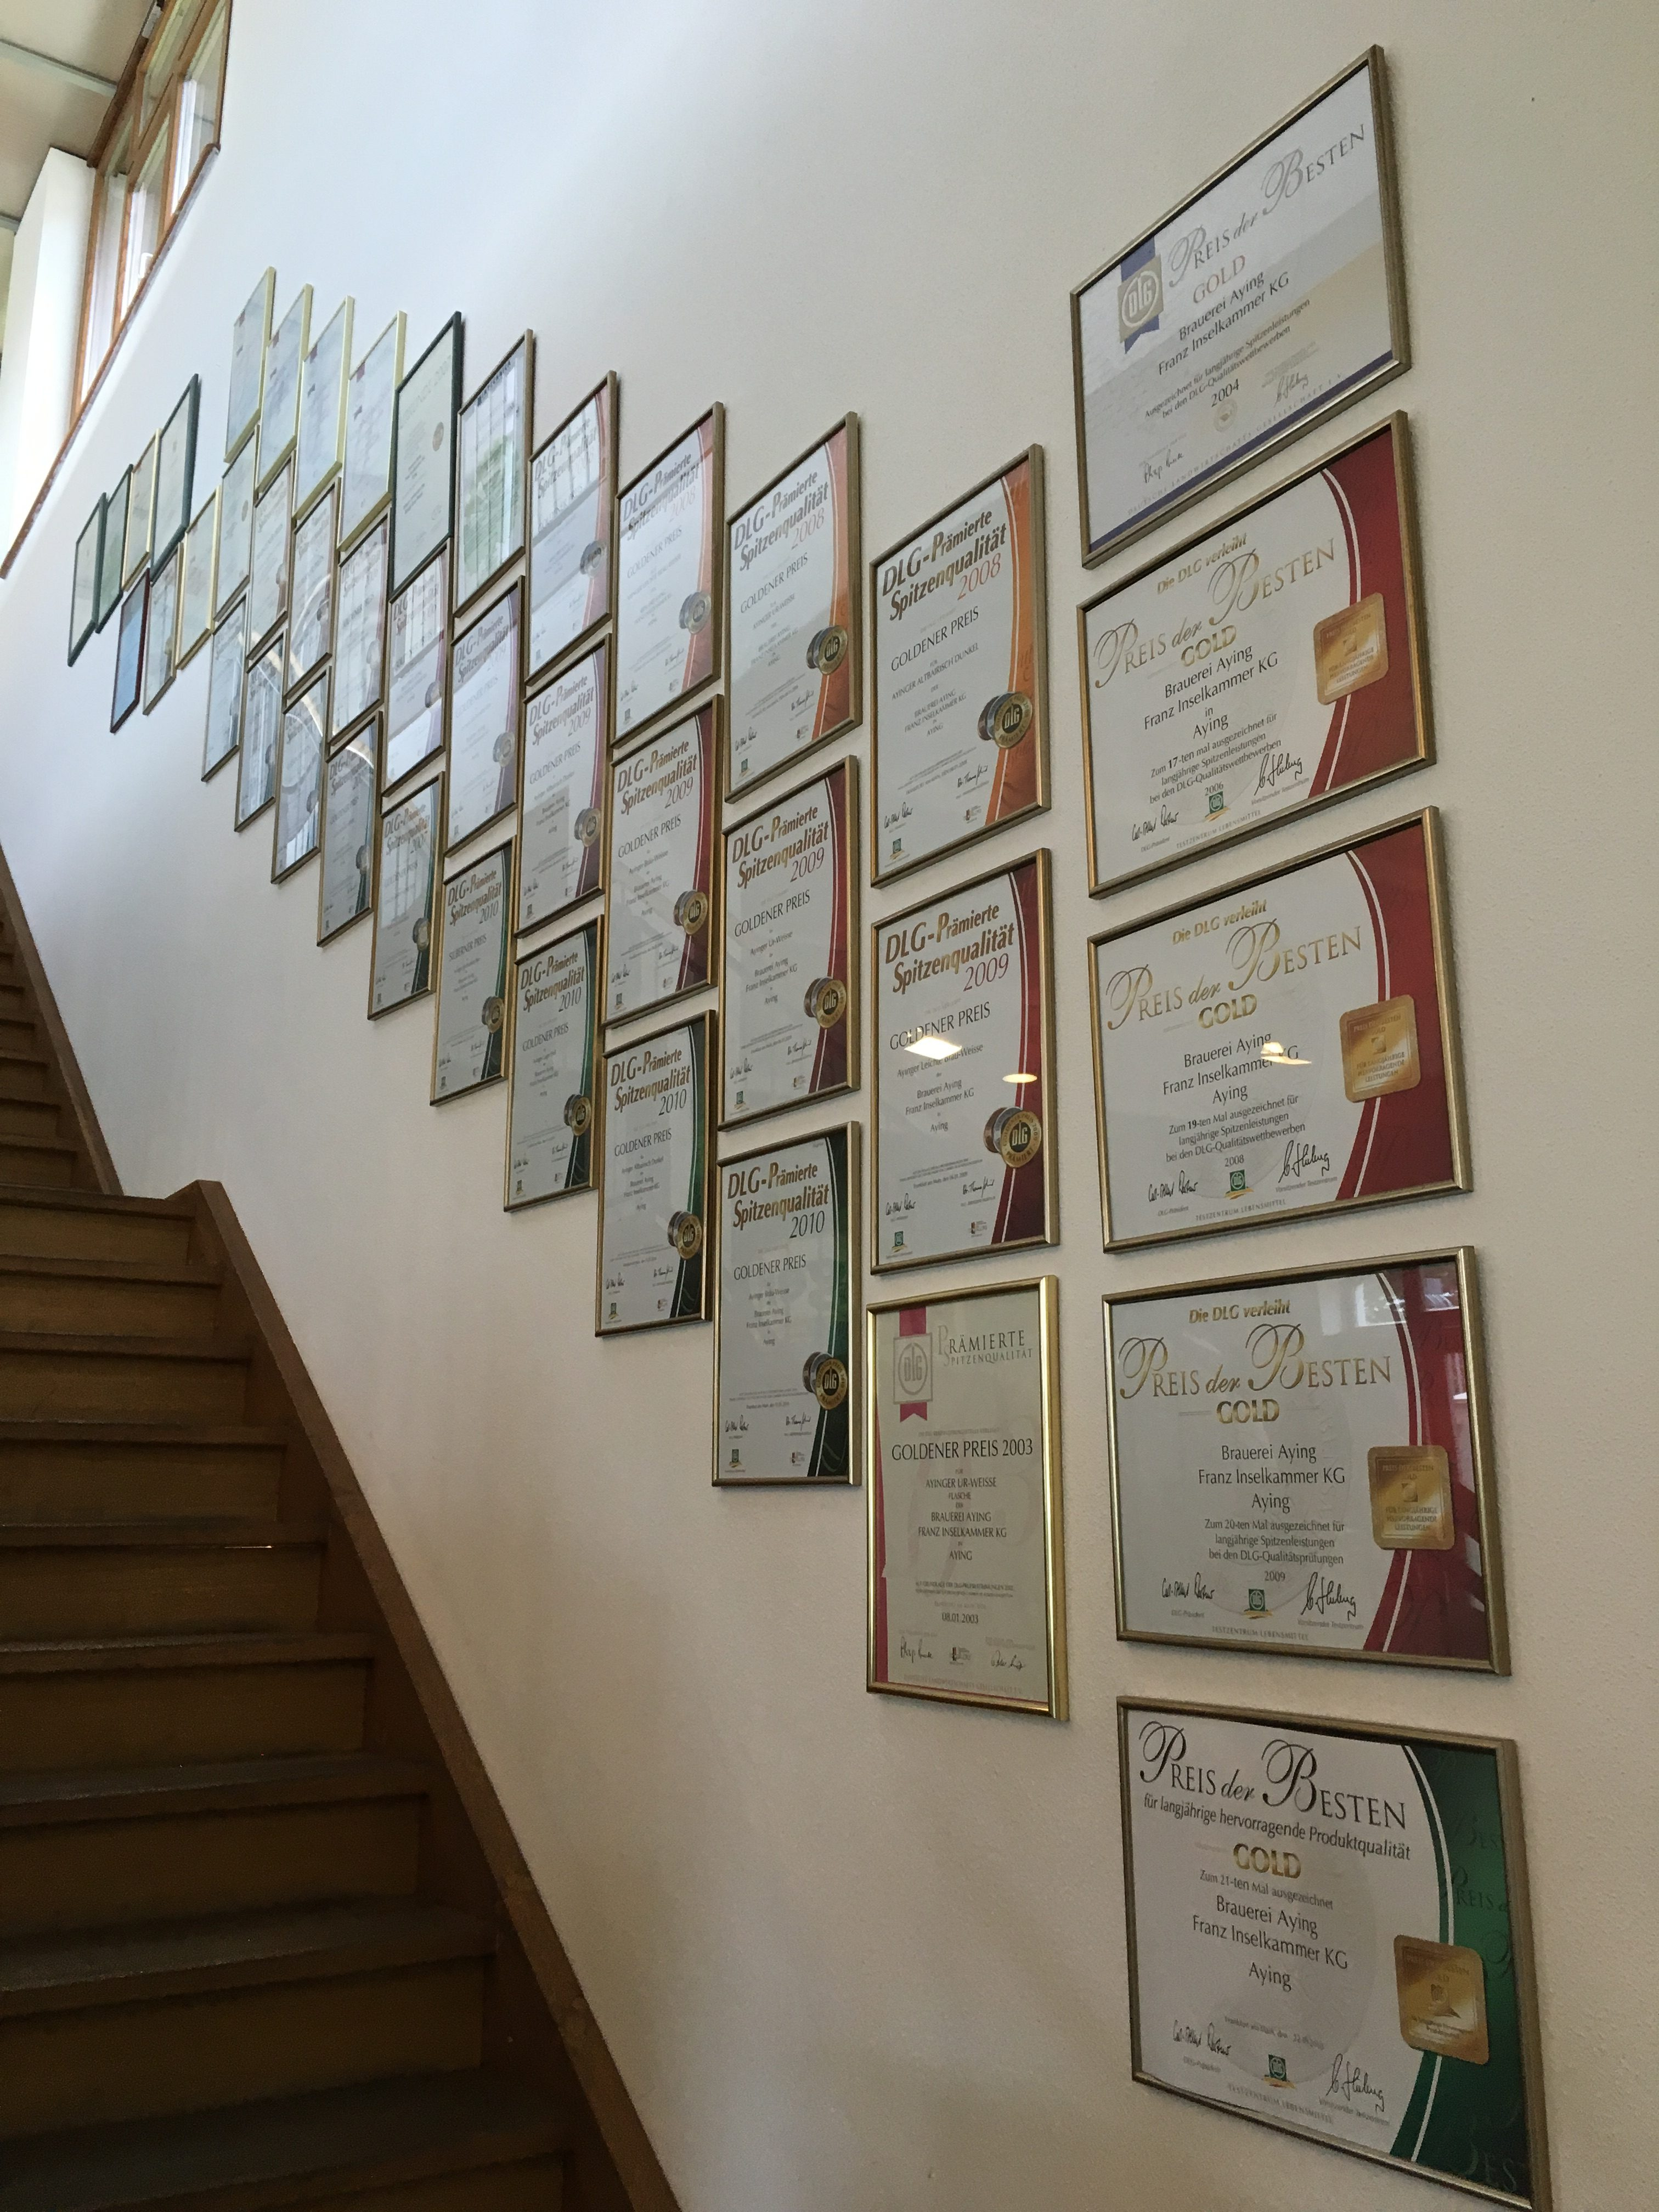 A stairway of Ayinger brewing awards.